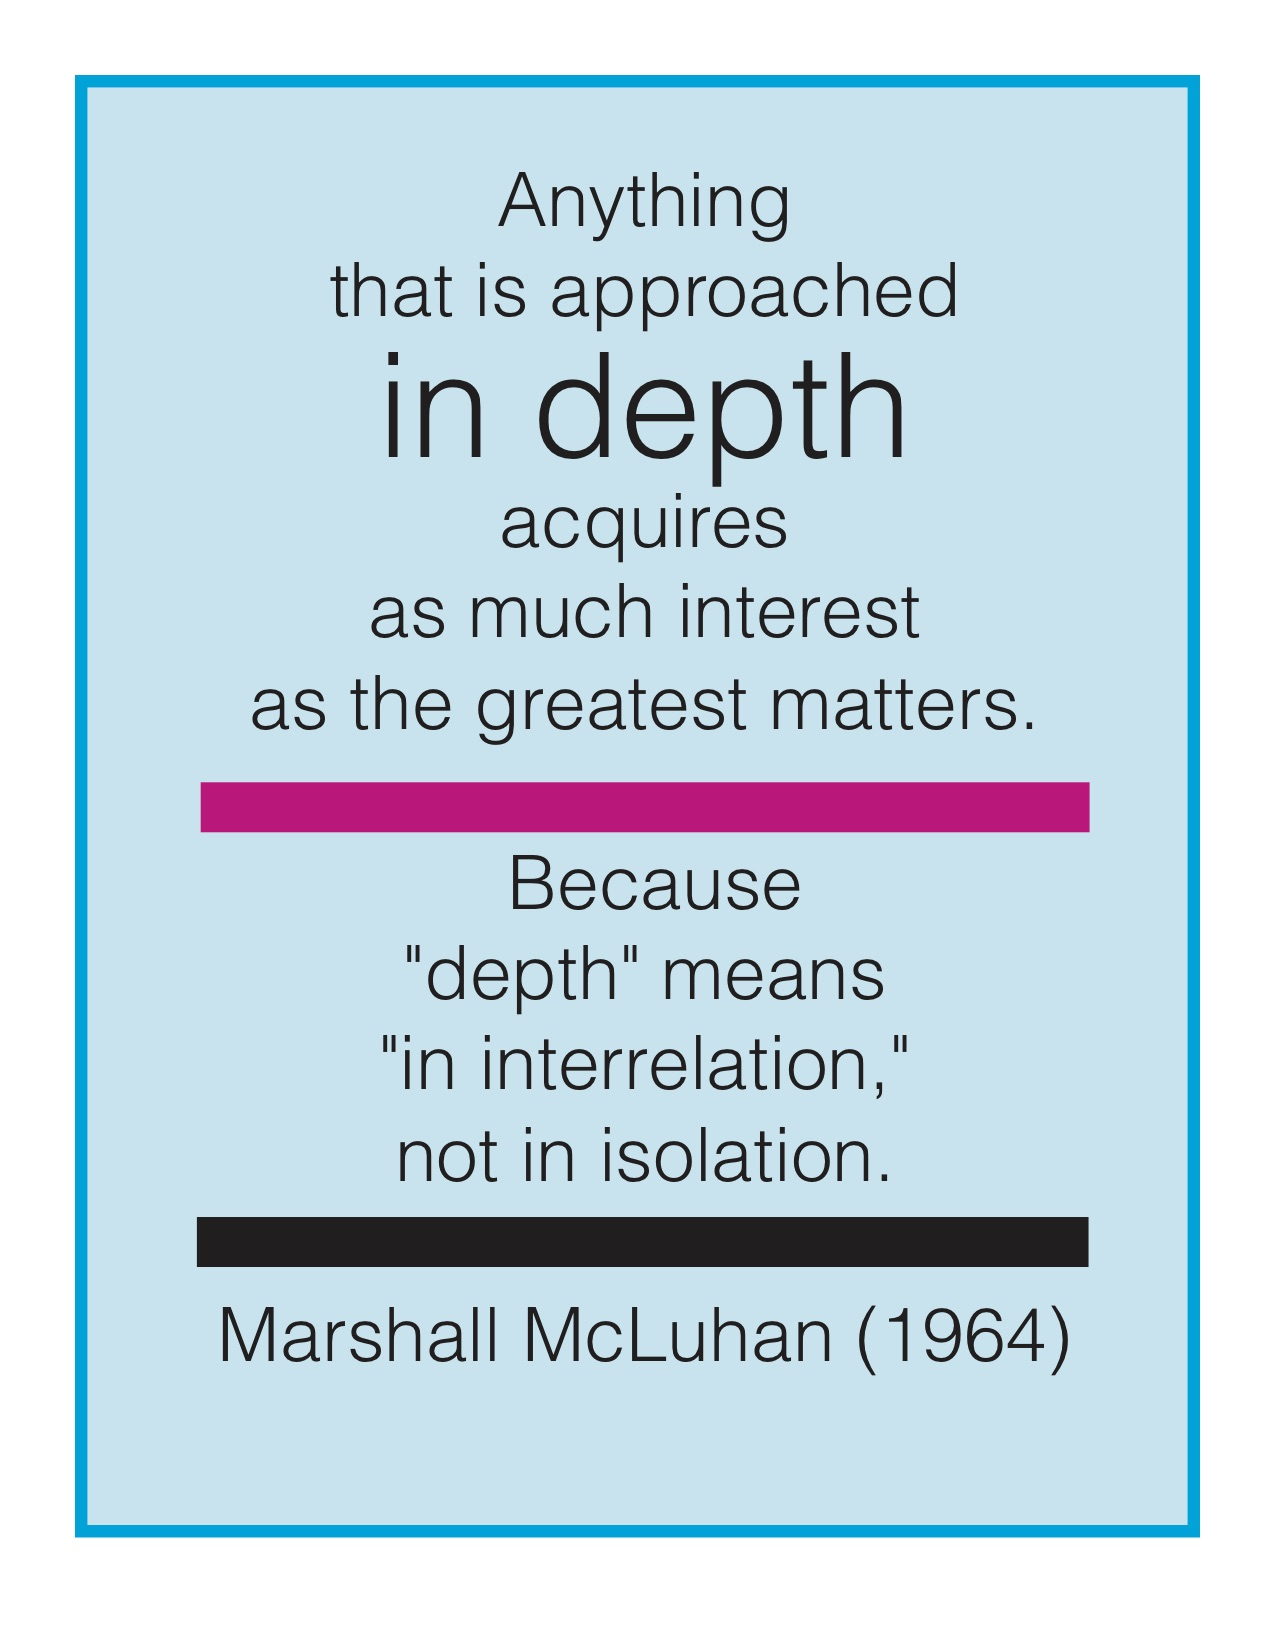 McLuhan Depth text